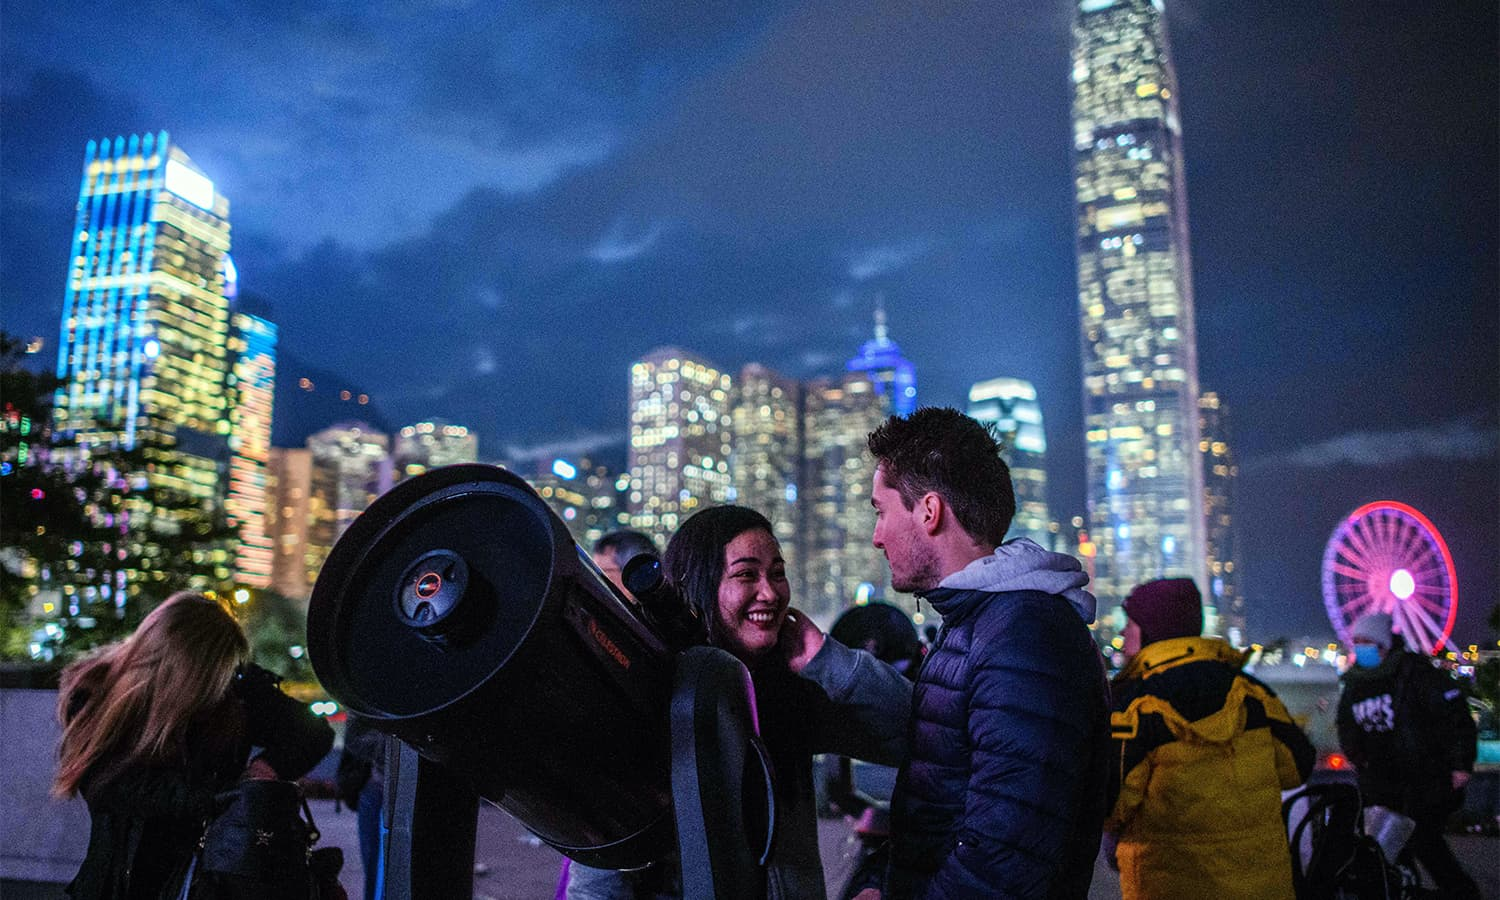 People set up telescopes near Victoria Harbour in the hope of seeing a 'supermoon' on a cloudy evening in Hong Kong on January 31.— AFP